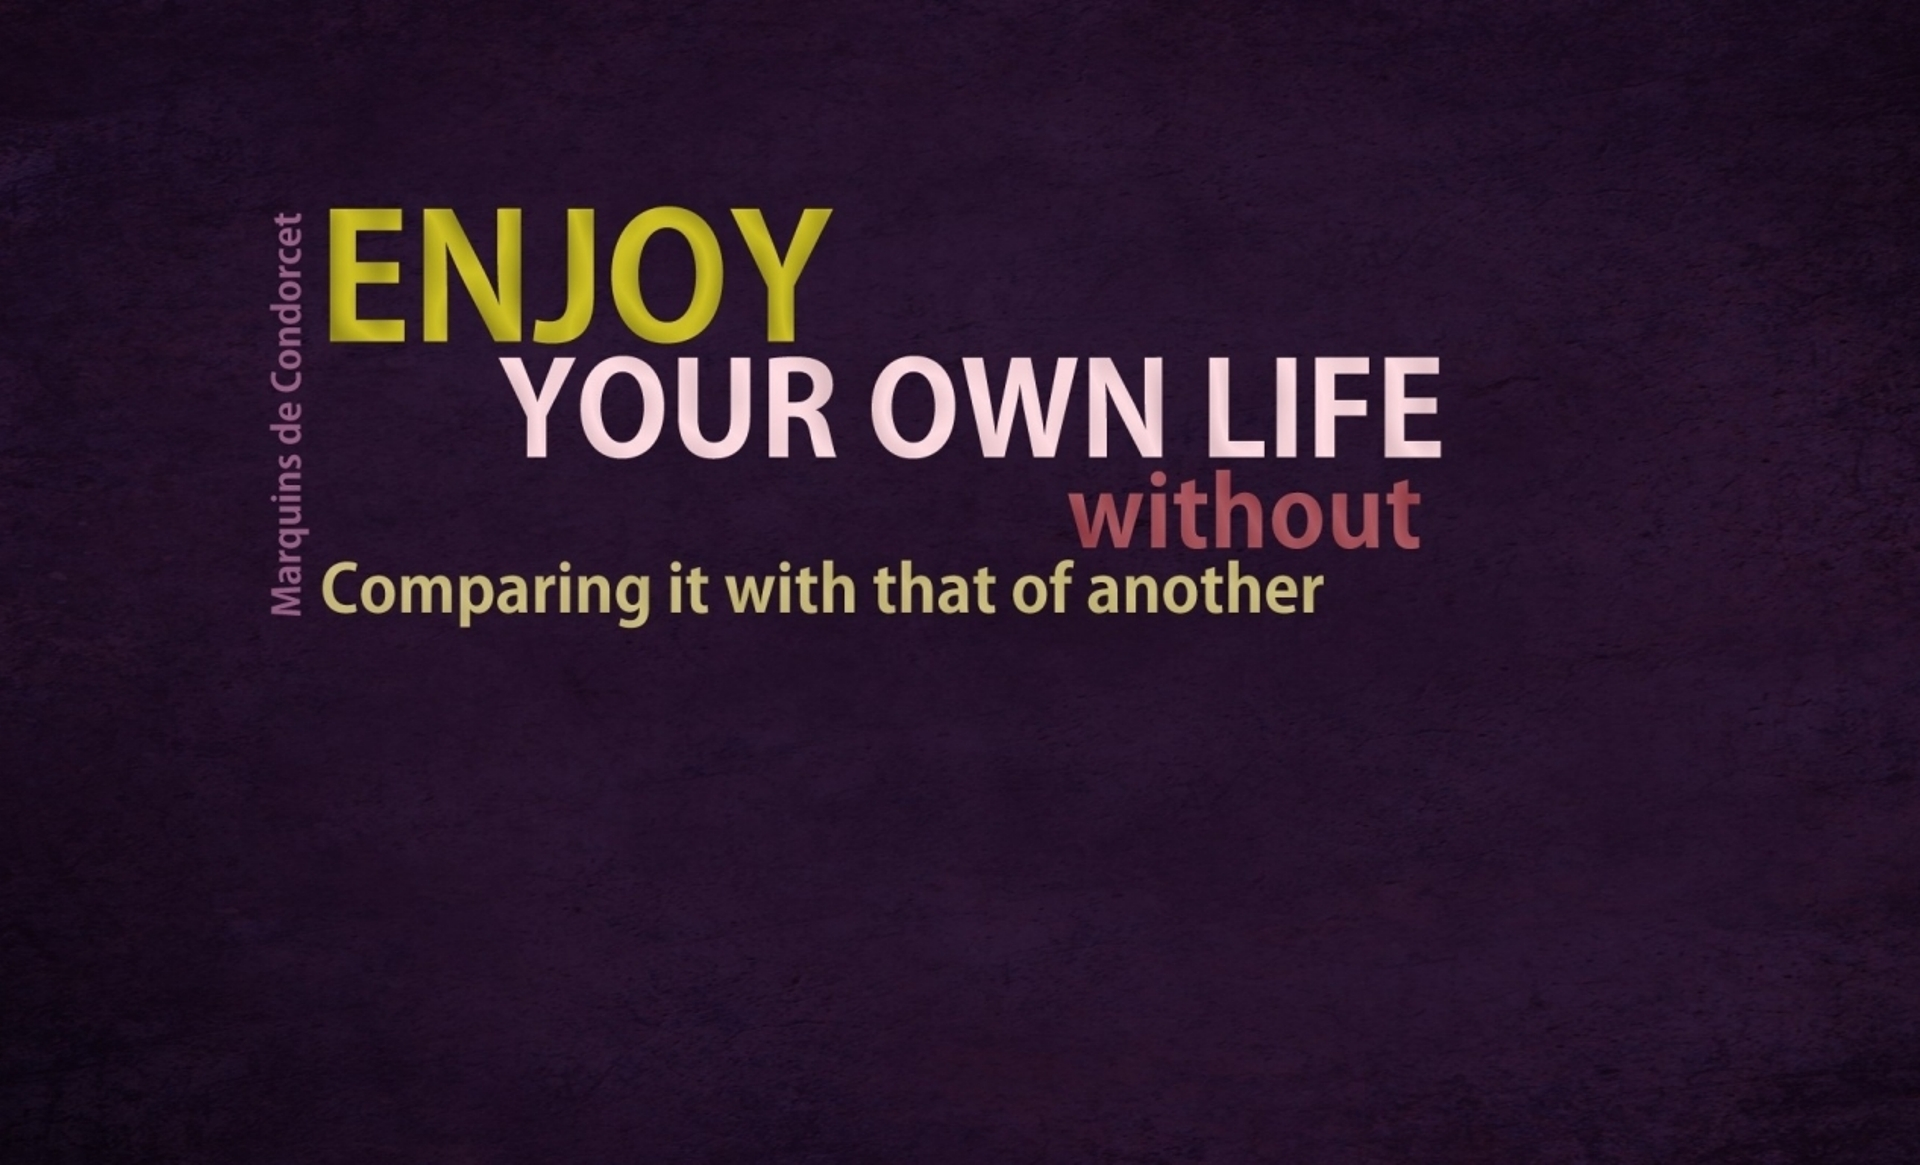 Wallpaper download english - Enjoy Your Life Quotes Desktop Wallpaper Free For Desktop Download